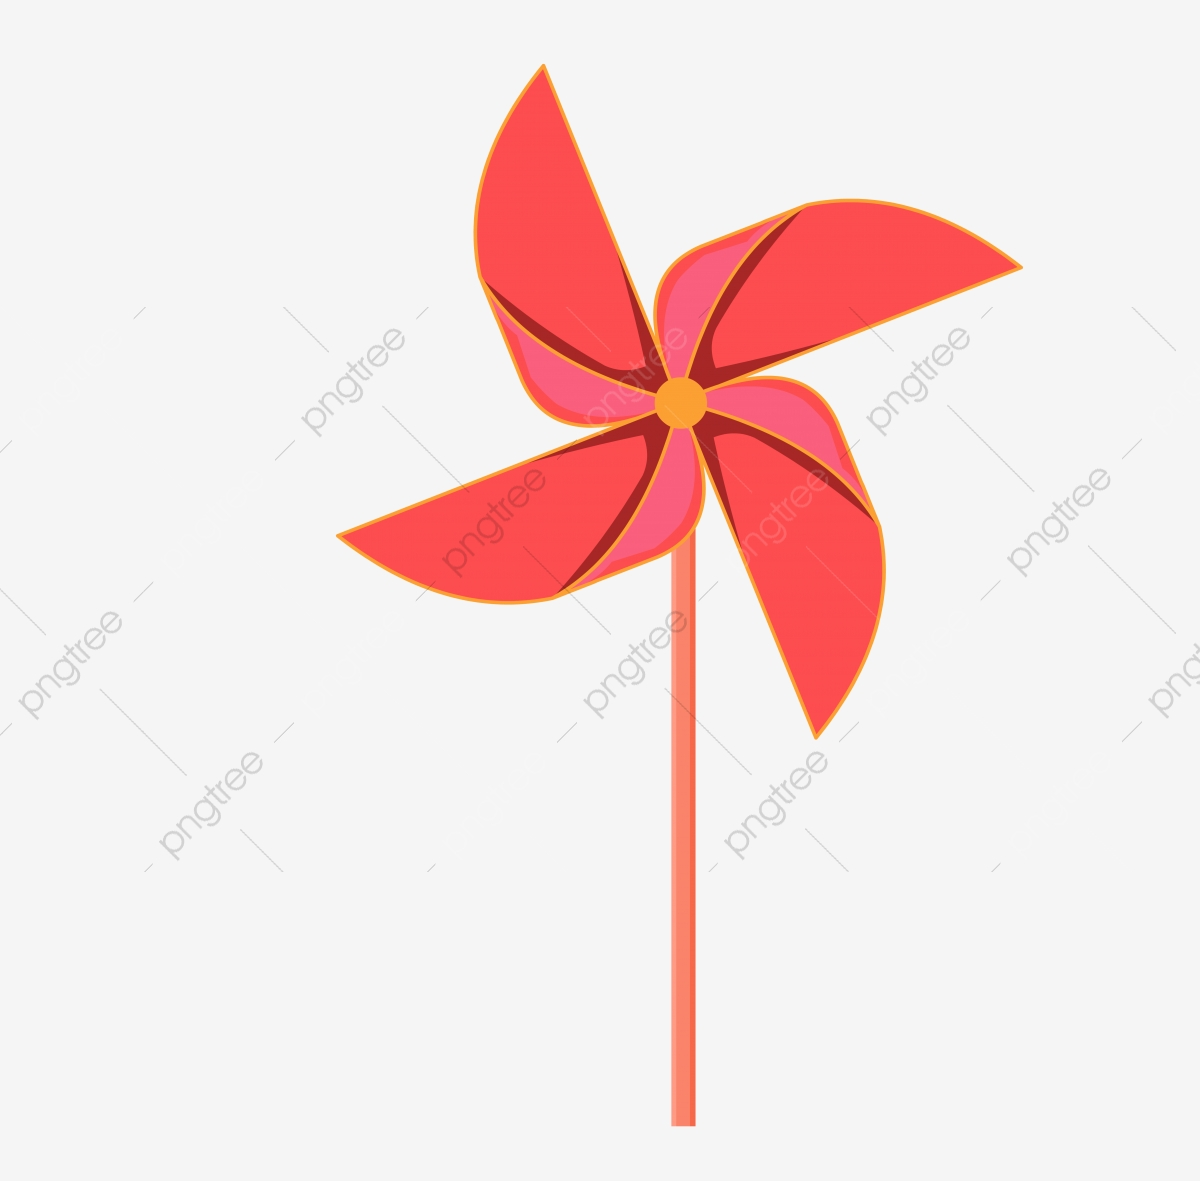 Simple Wind Paper Windmill Element Design, Minimalism, Paper.